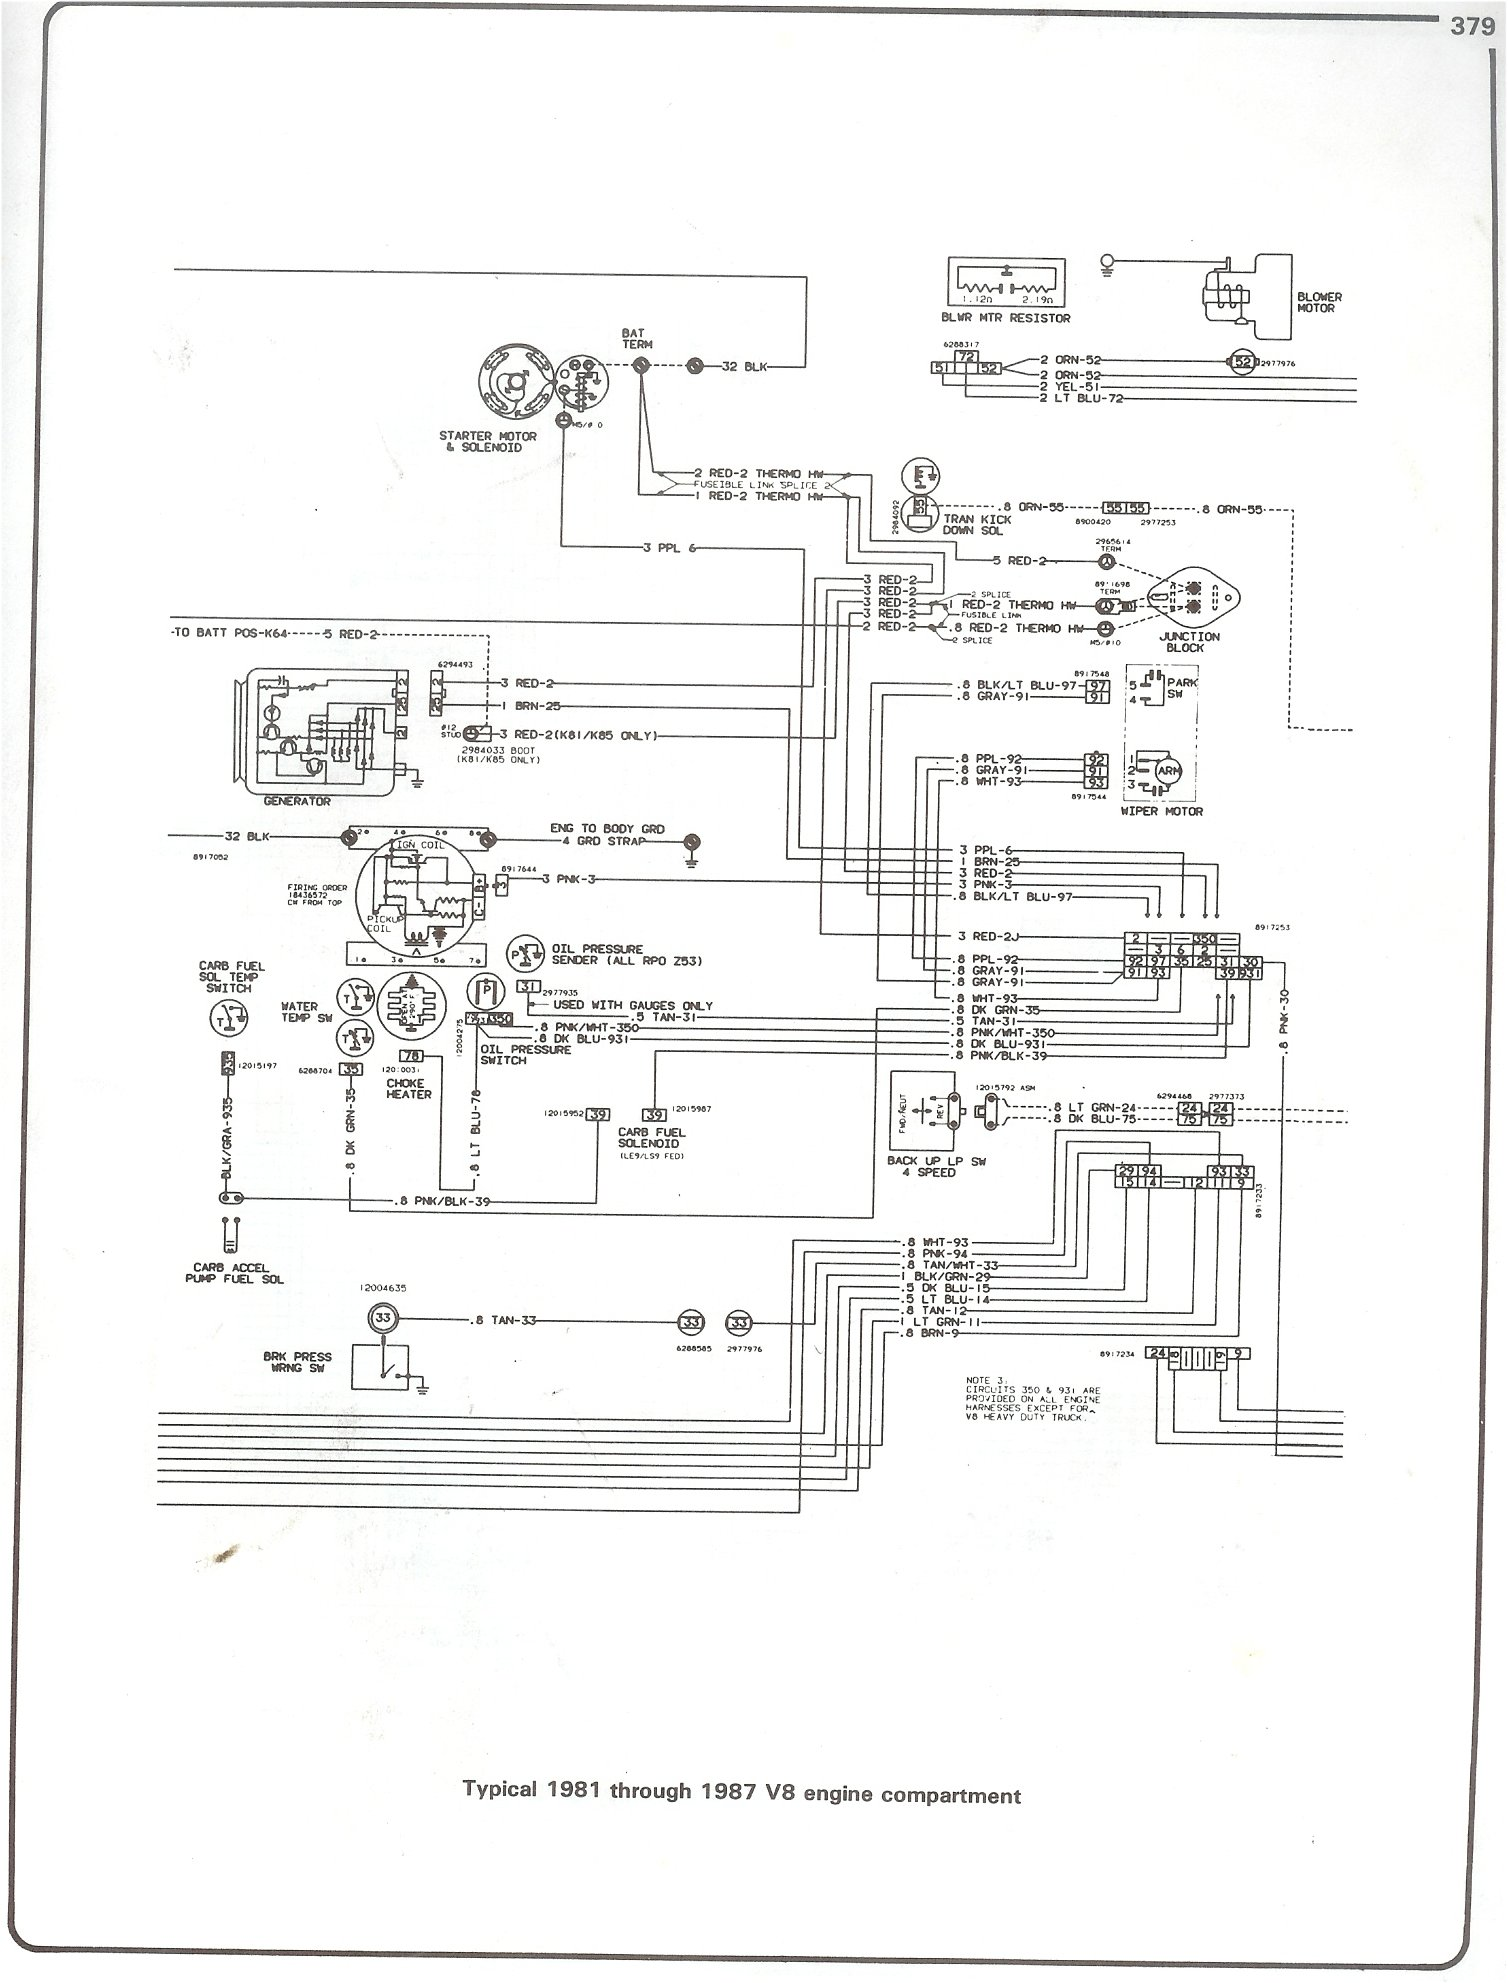 1955 corvette fuse box diagram · complete 73